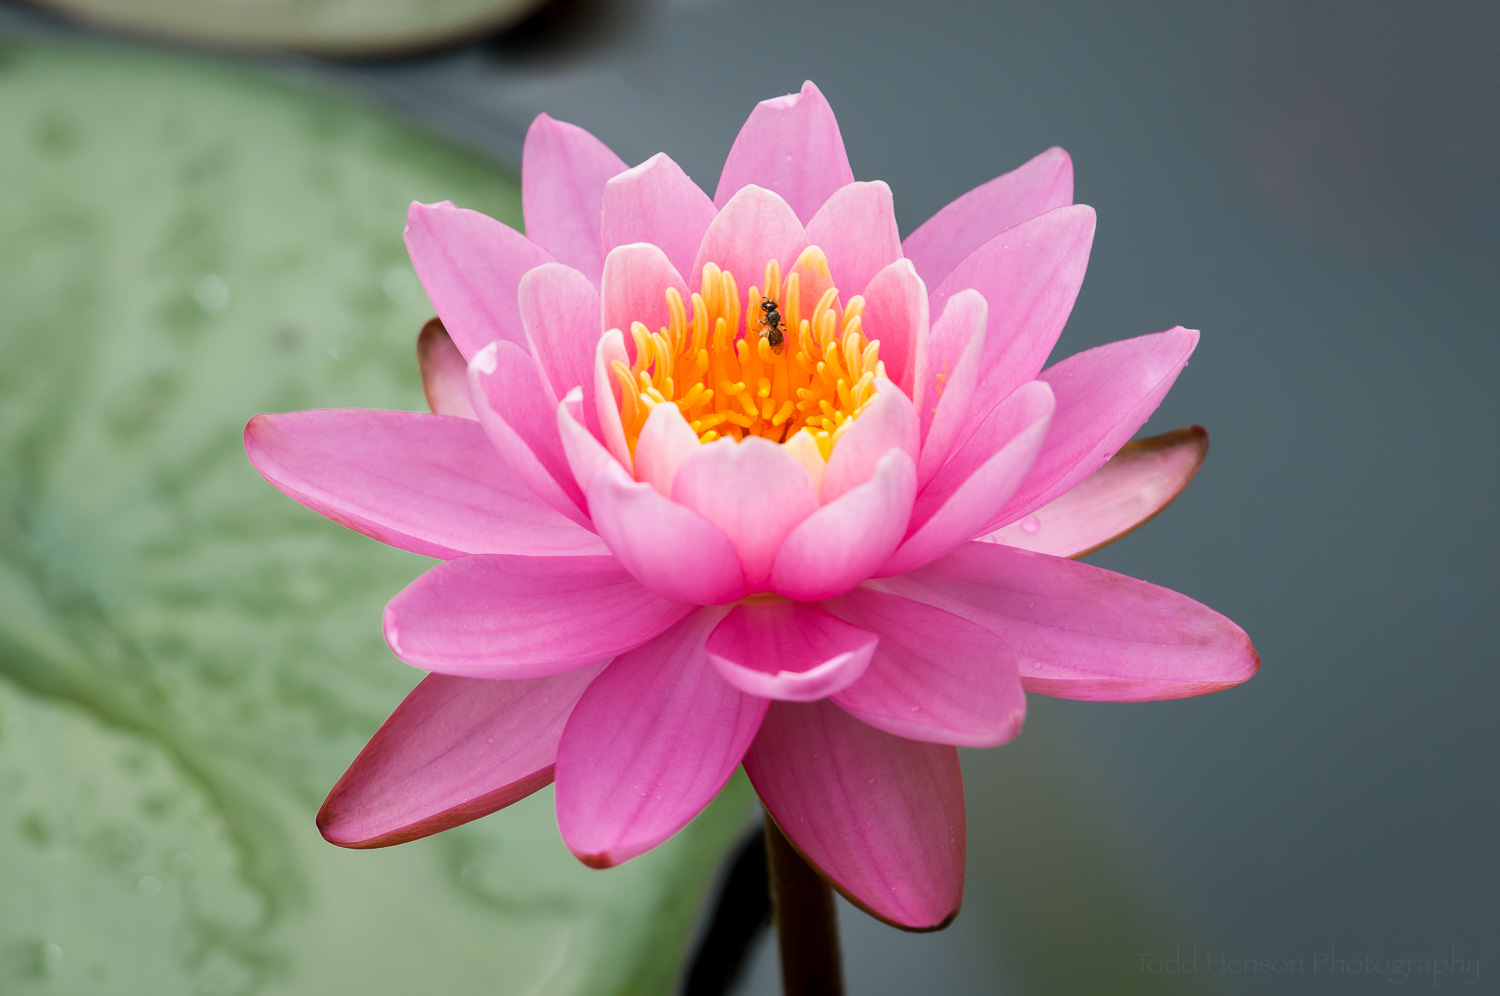 Pink water lily and a small insect